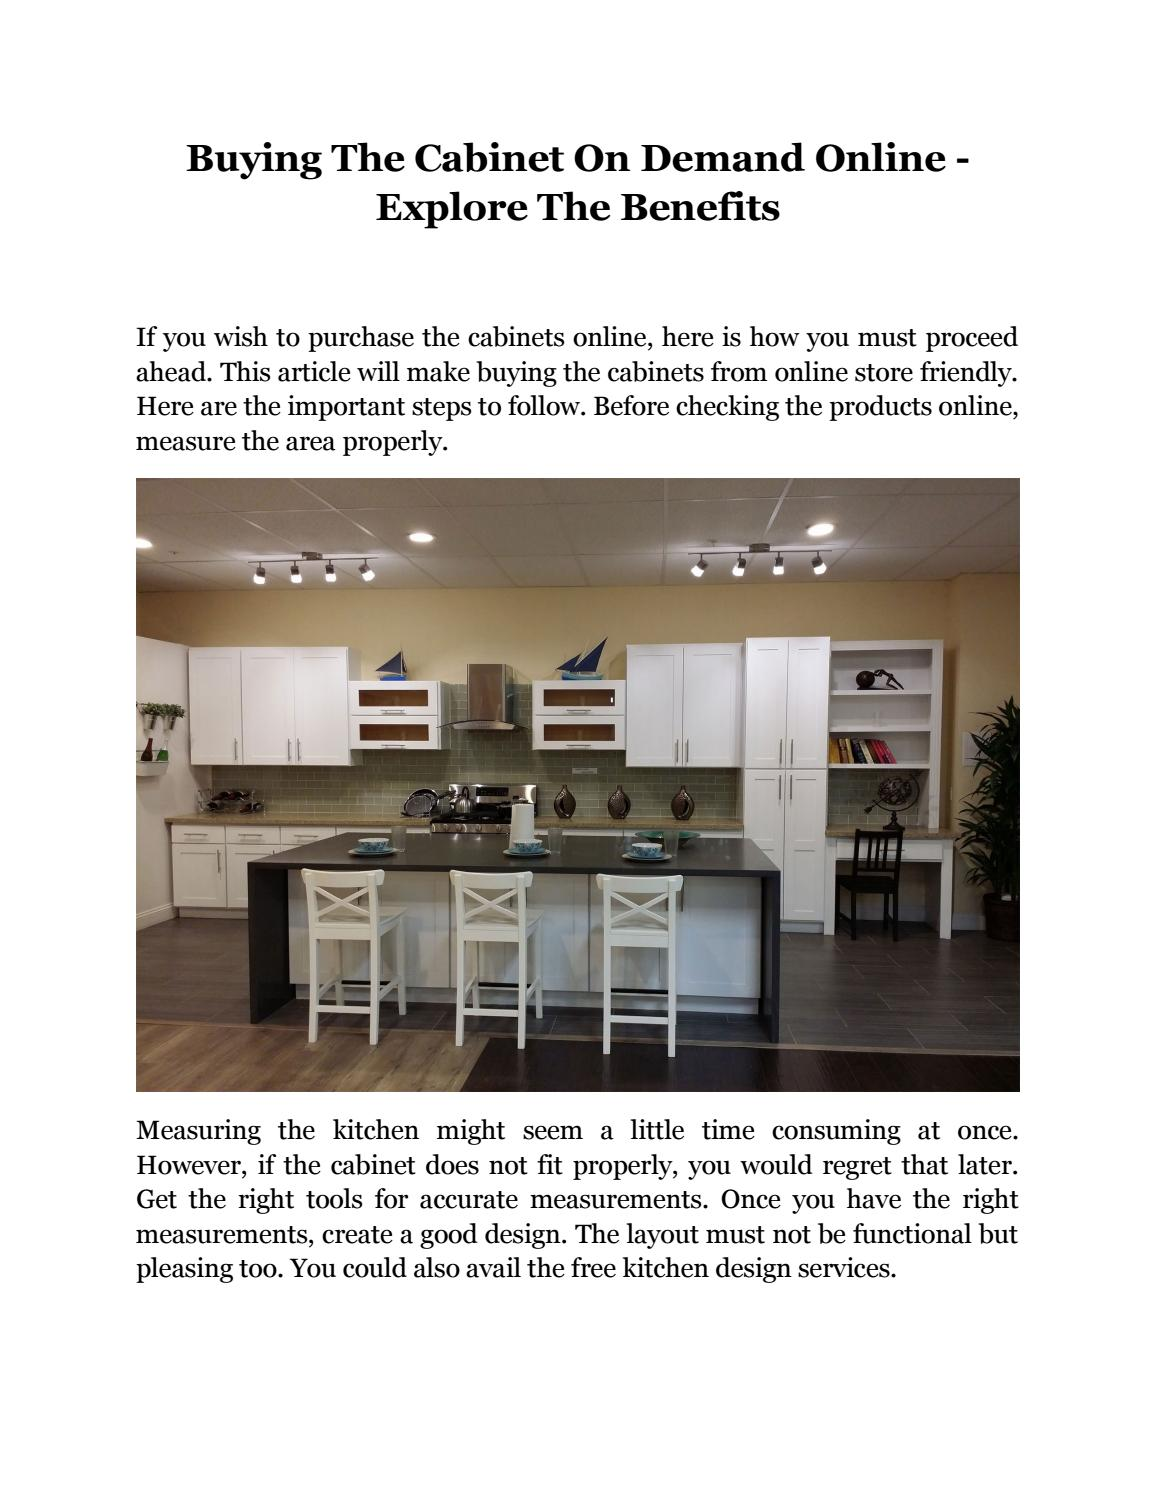 Buying The Cabinet On Demand Online-Explore The Benefits by ...